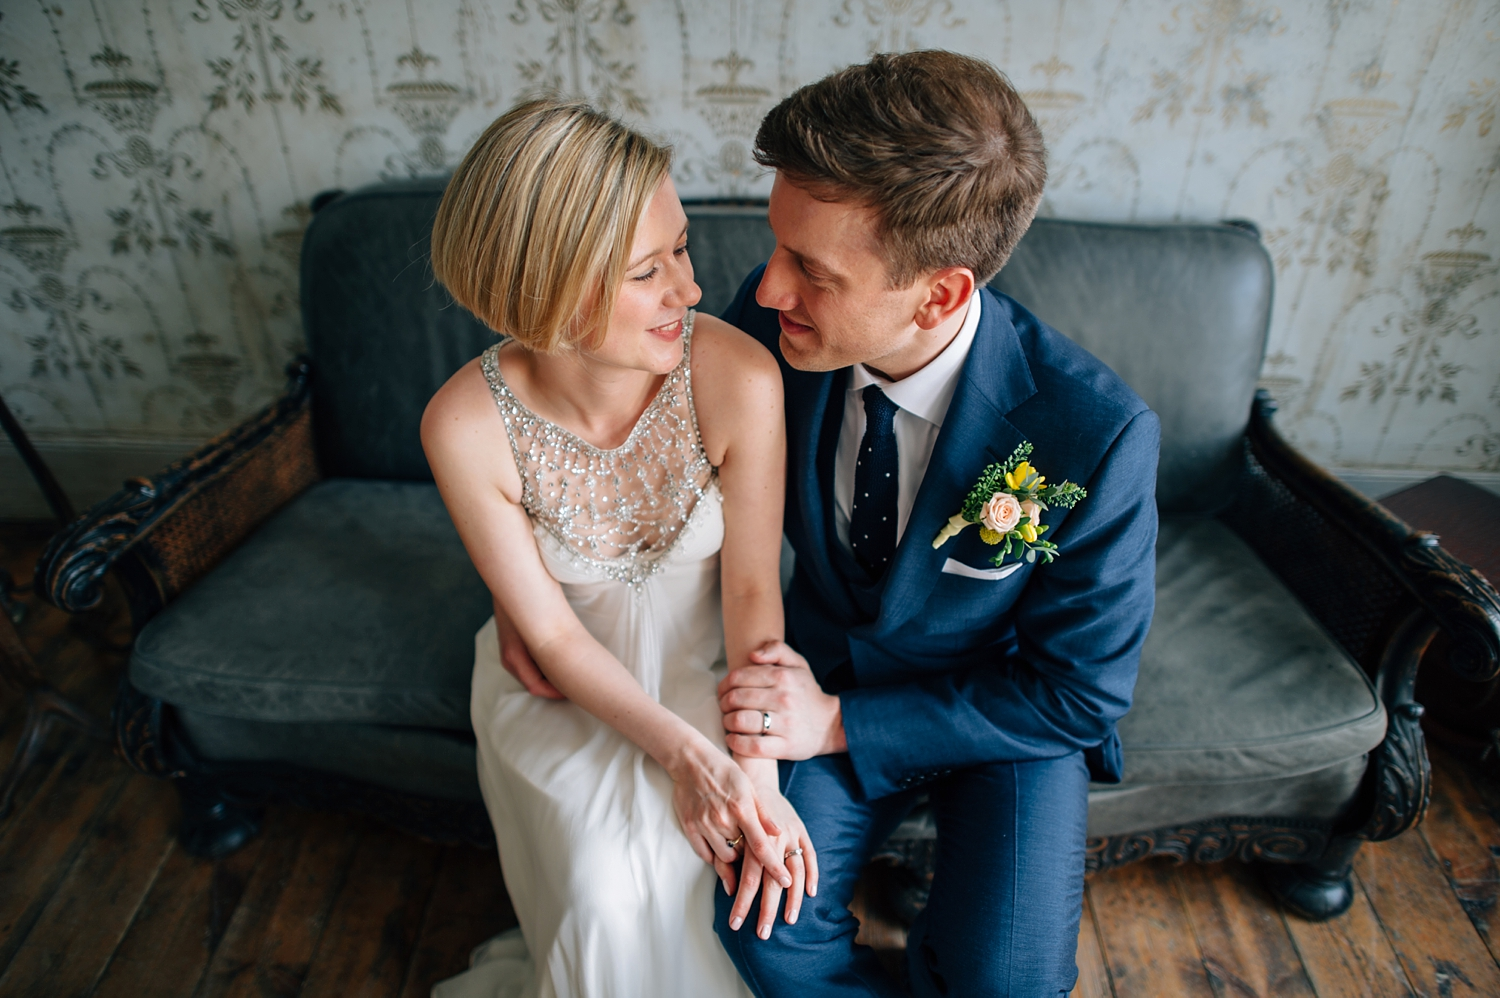 0118-lisa-devine-alternative-wedding-photography-london-hackney-dalston-london-photography-townhall-hotel.JPG